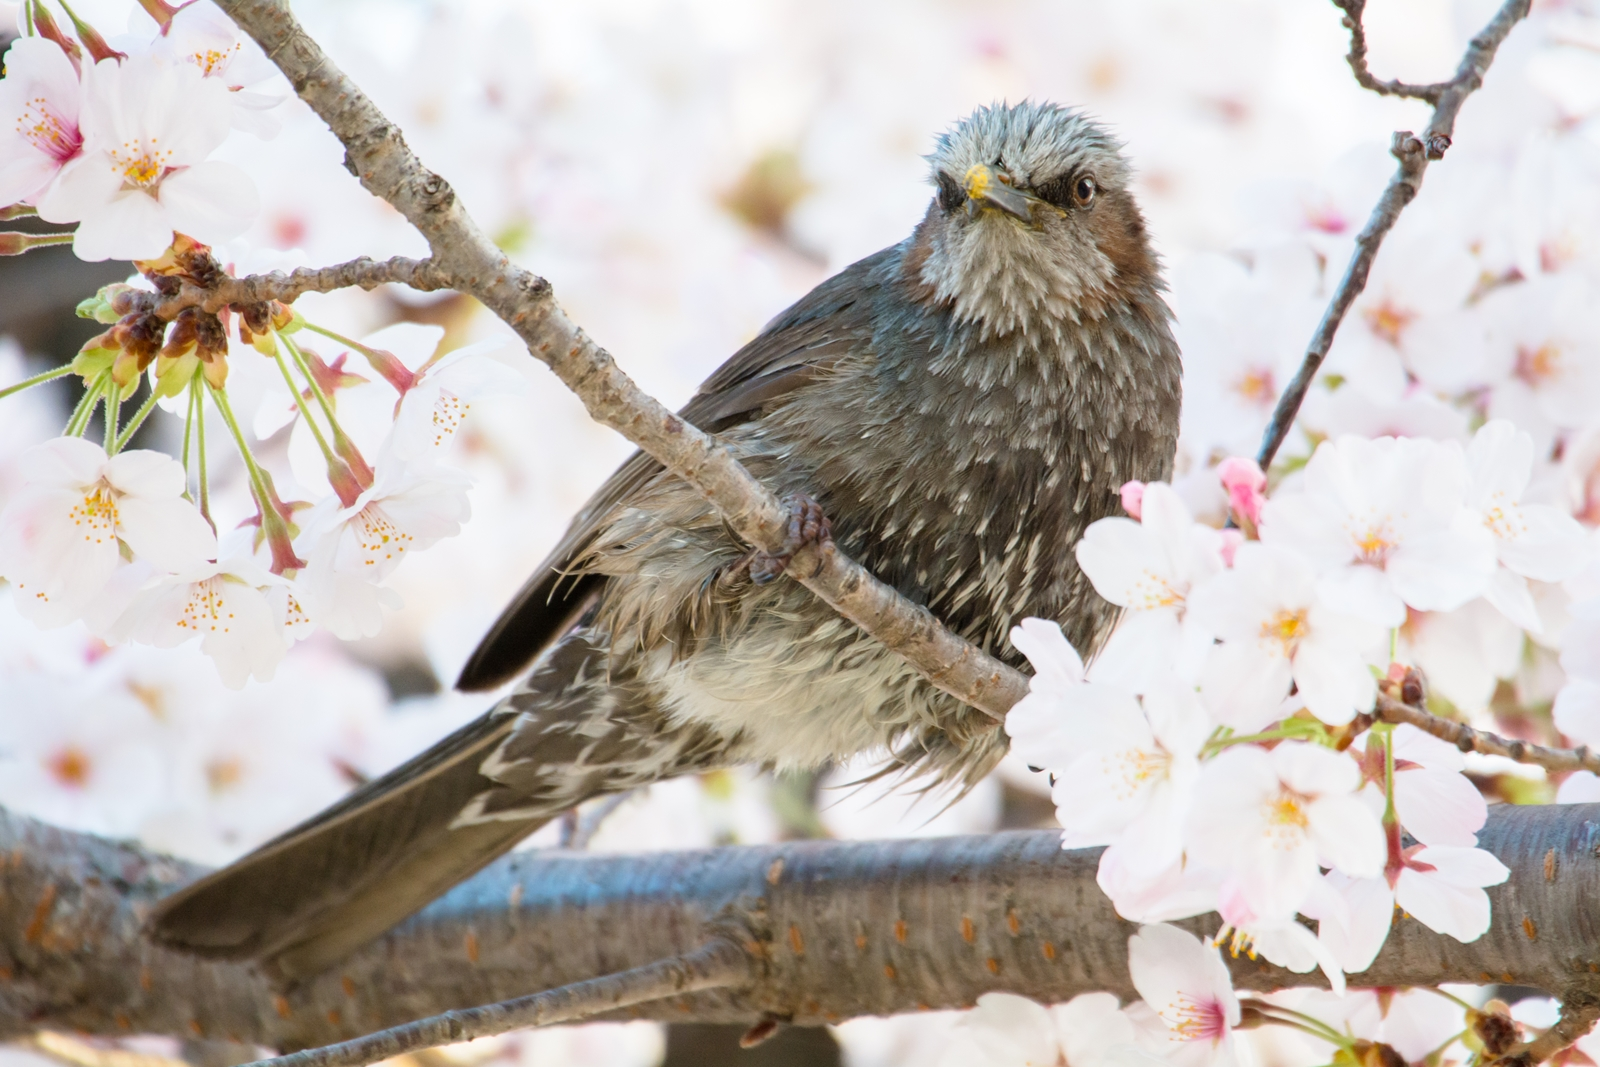 Photo: 満足を浮かべて Satisfied facial expression.  駆け抜ける桜の季節 楽しんで楽しんで 後悔することの無いように 精いっぱい楽しみ尽くそう  Cherry blossoms and Brown-eared Bulbul. (二ヶ領用水の桜とヒヨドリ)  #IslandGallery_BrightLights +Takahiro Yamamoto  +Island Gallery   #fujisakura #cooljapan #365cooljapanmay  #birdphotography #birds  #kawaii  Nikon D7100 SIGMA APO 50-500mm F5-6.3 DG OS HSM [ Day336, April 13th ]  小鳥の詩朗読 https://youtu.be/sAjVYCfKkl0?list=PL2YtHGm0-R3qVsaqvQe9OYdJFCkI98wzF